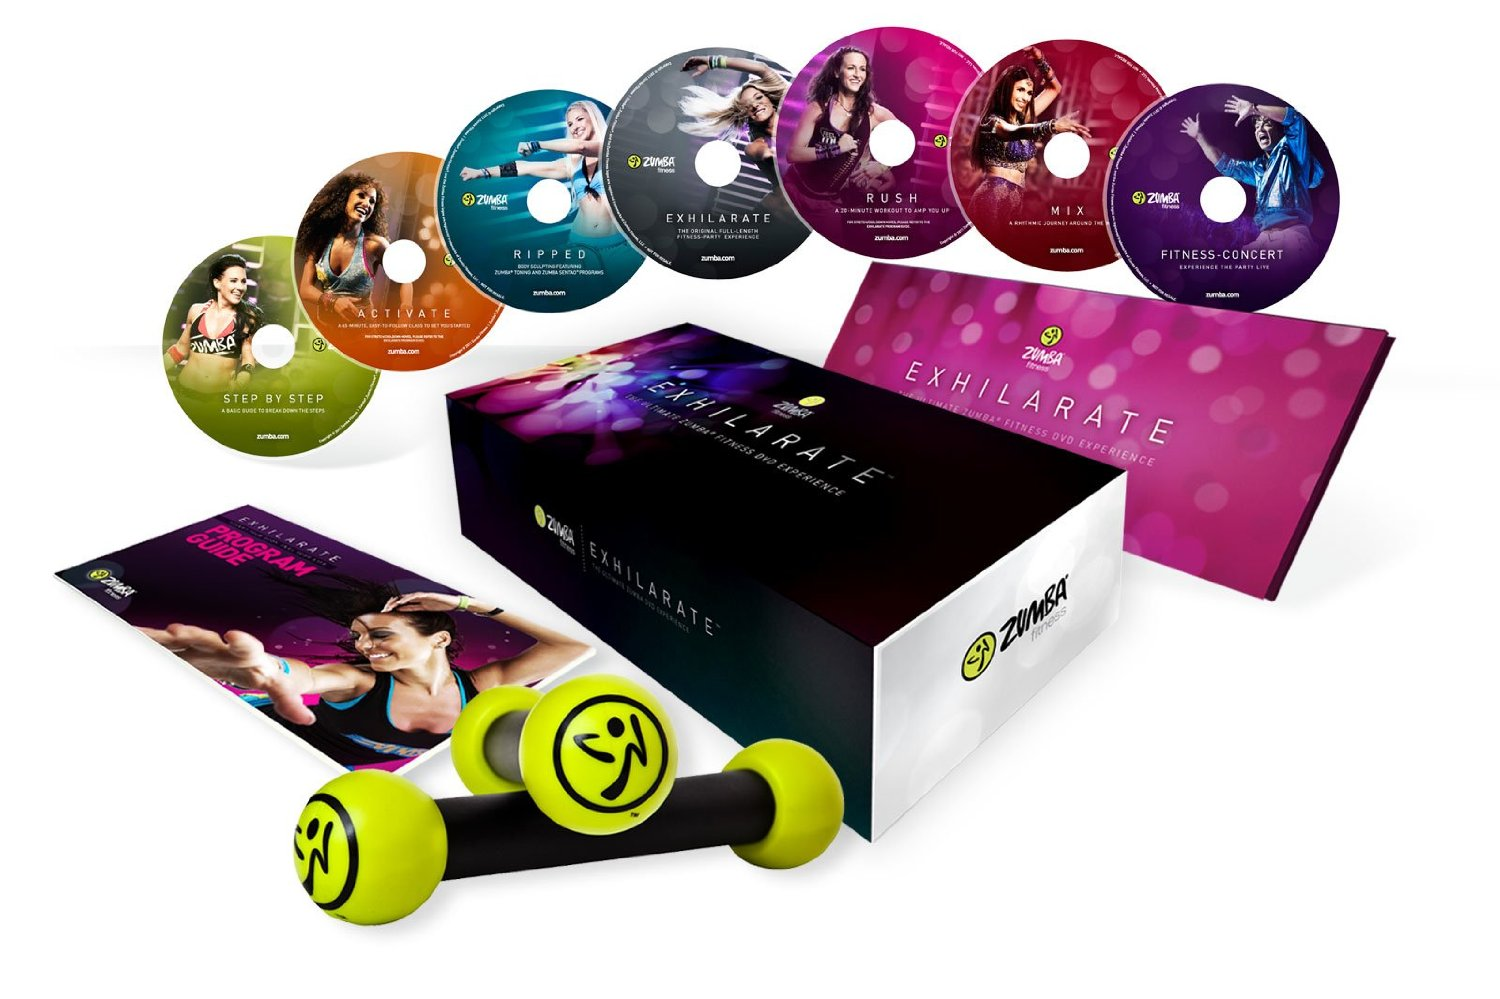 zumba exhilarate body shaping system download free